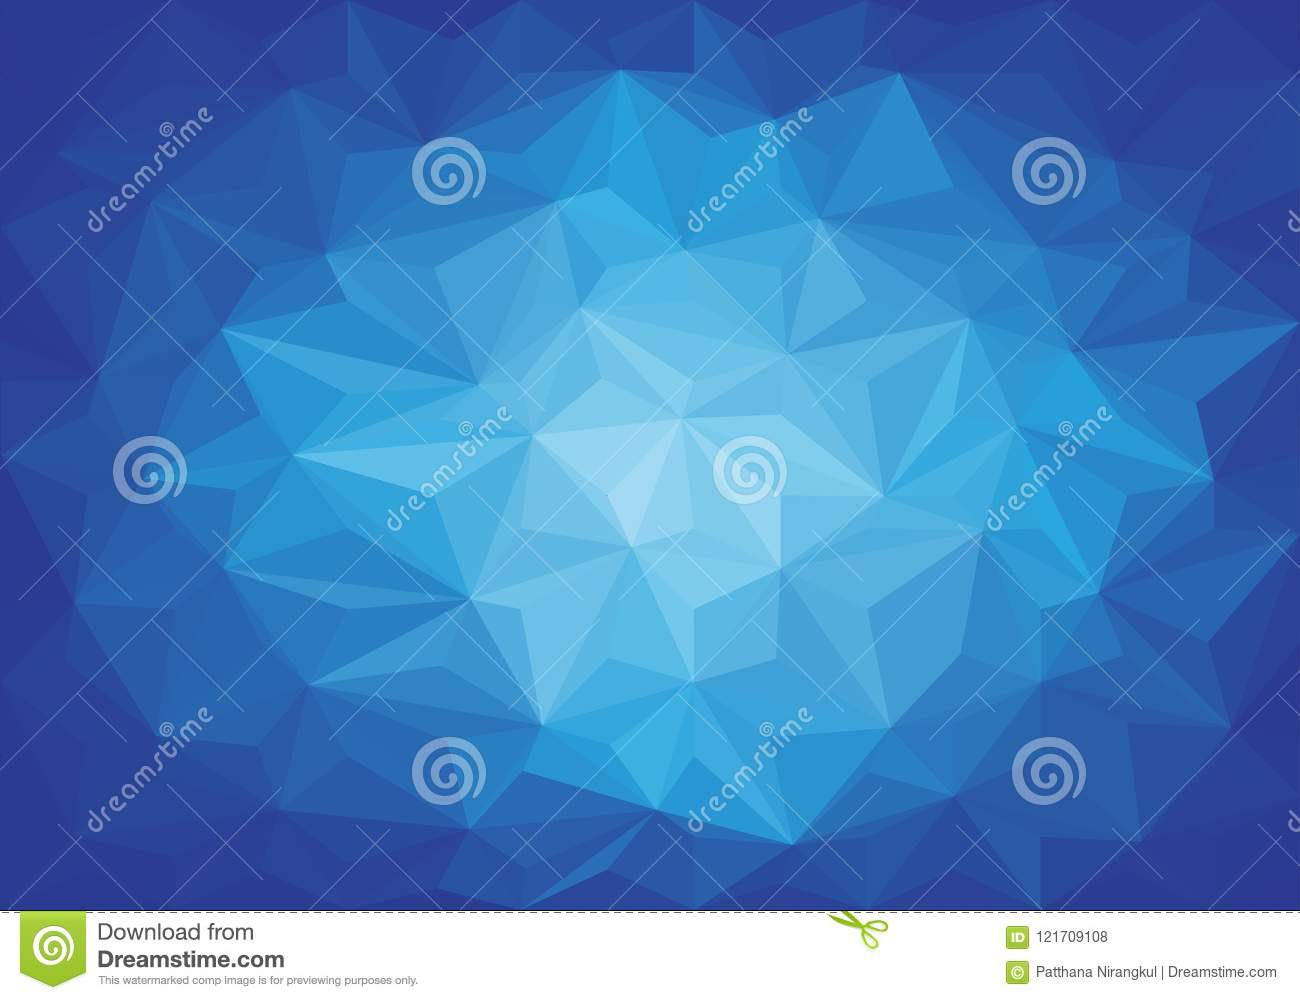 Download Abstract Blue Light Triangle 3D Low Polygon Background Texture  Vector Stock Vector   Illustration Of